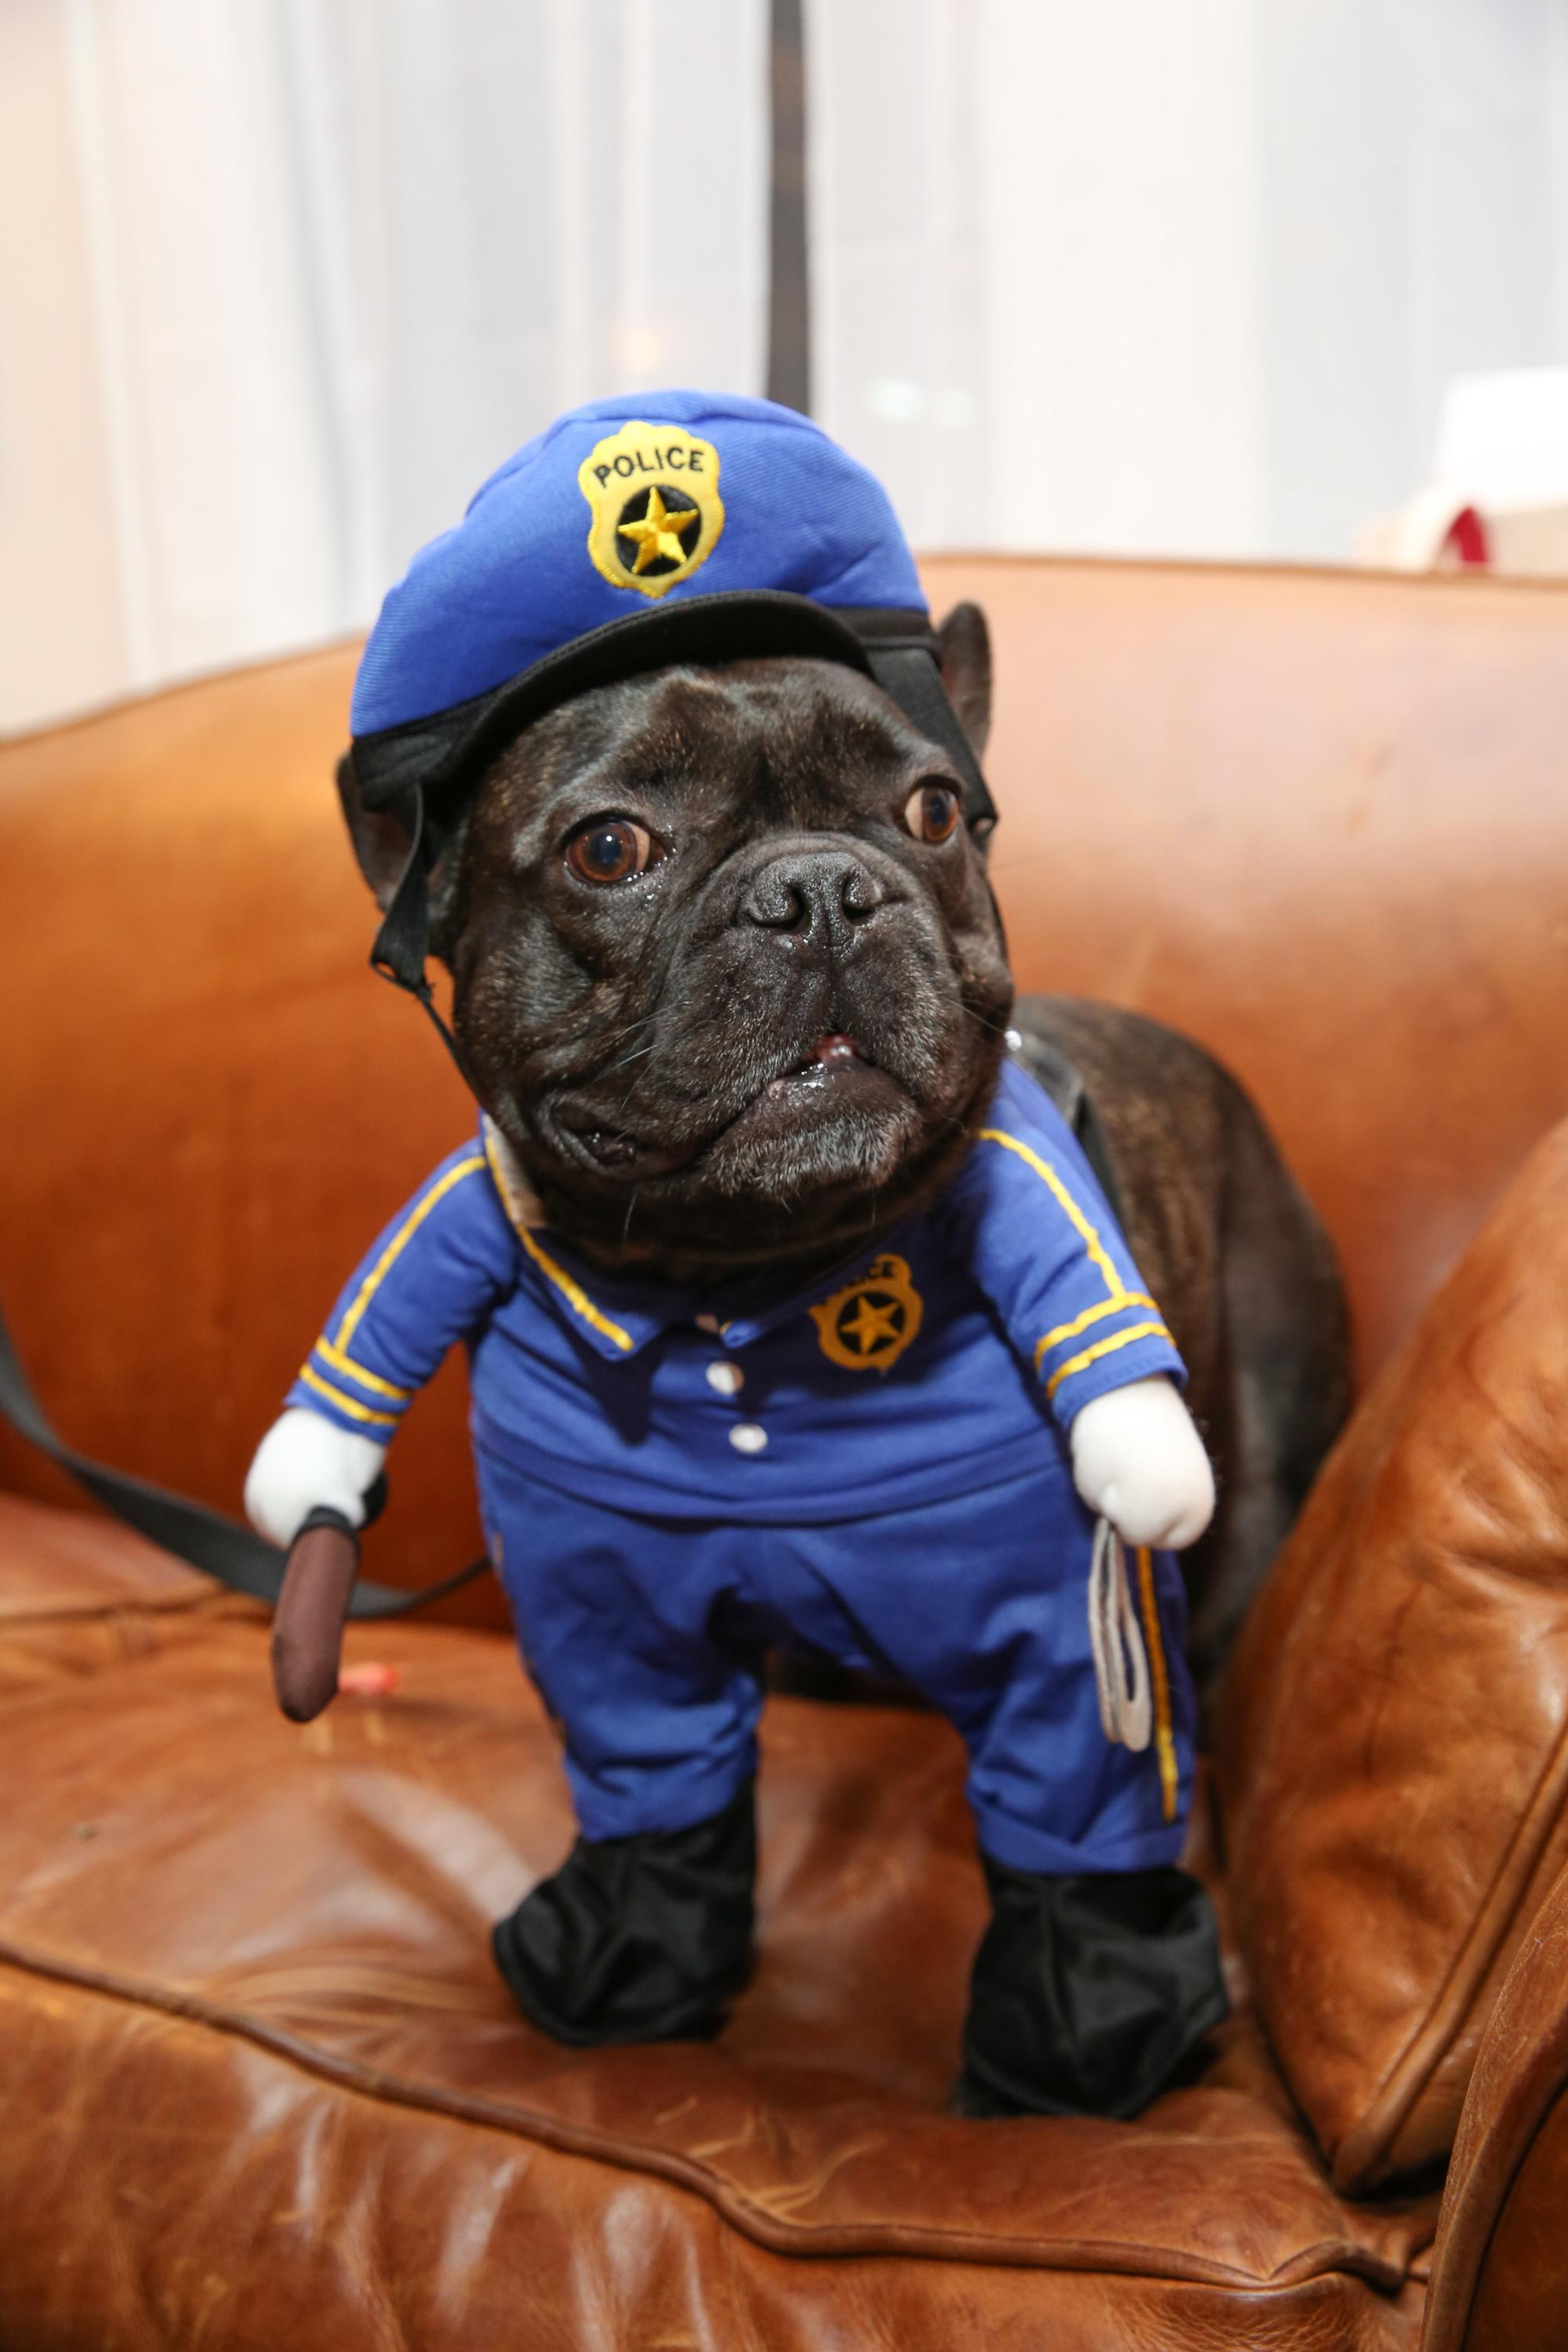 Is your dog's Halloween costume sexist? | The Spokesman-Review